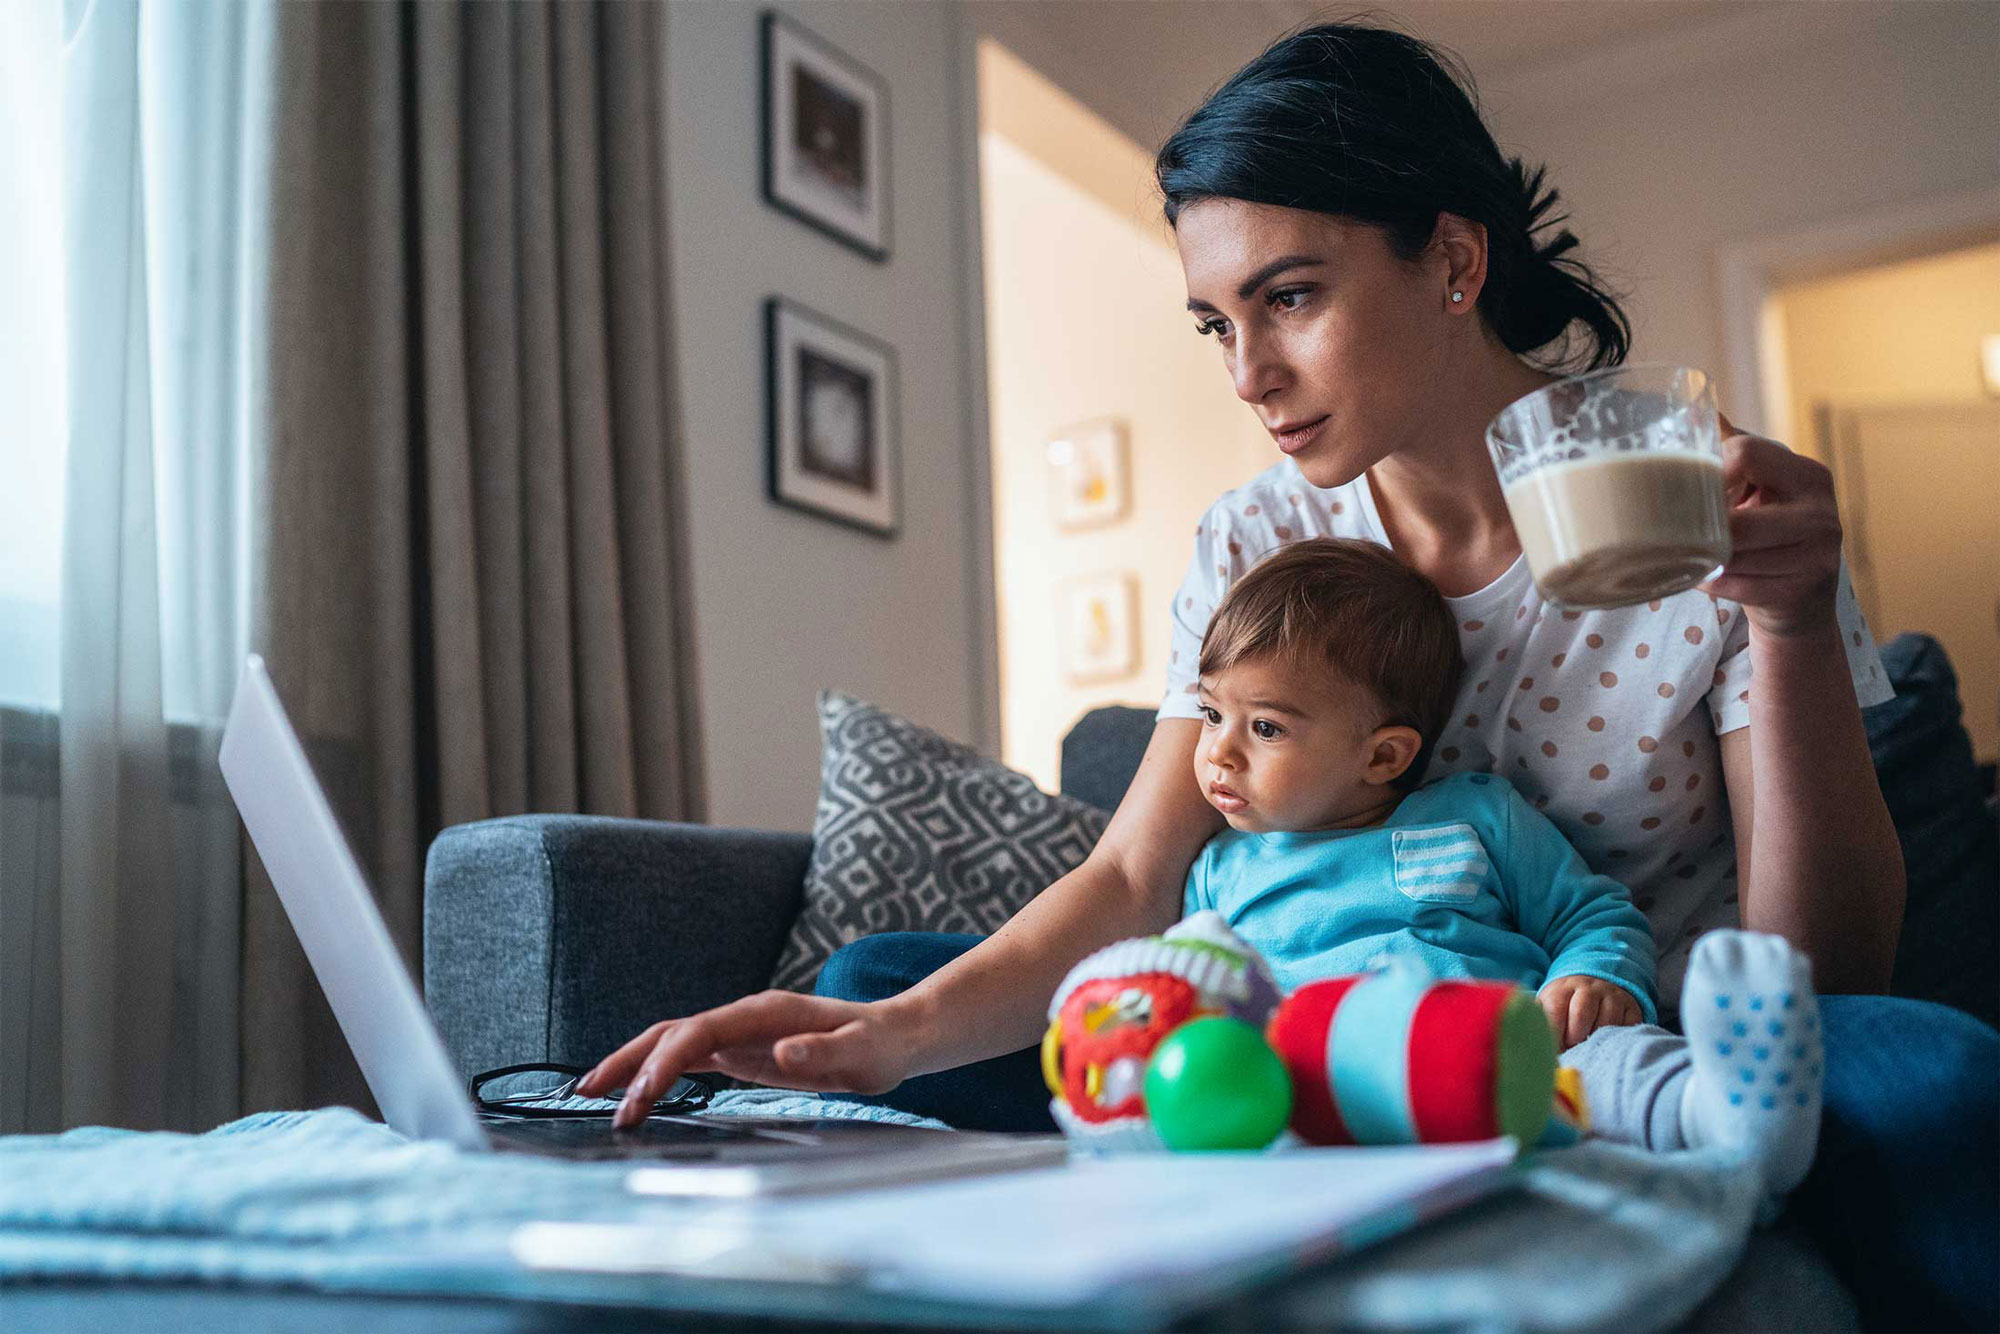 photo - Woman with Baby Working from Home